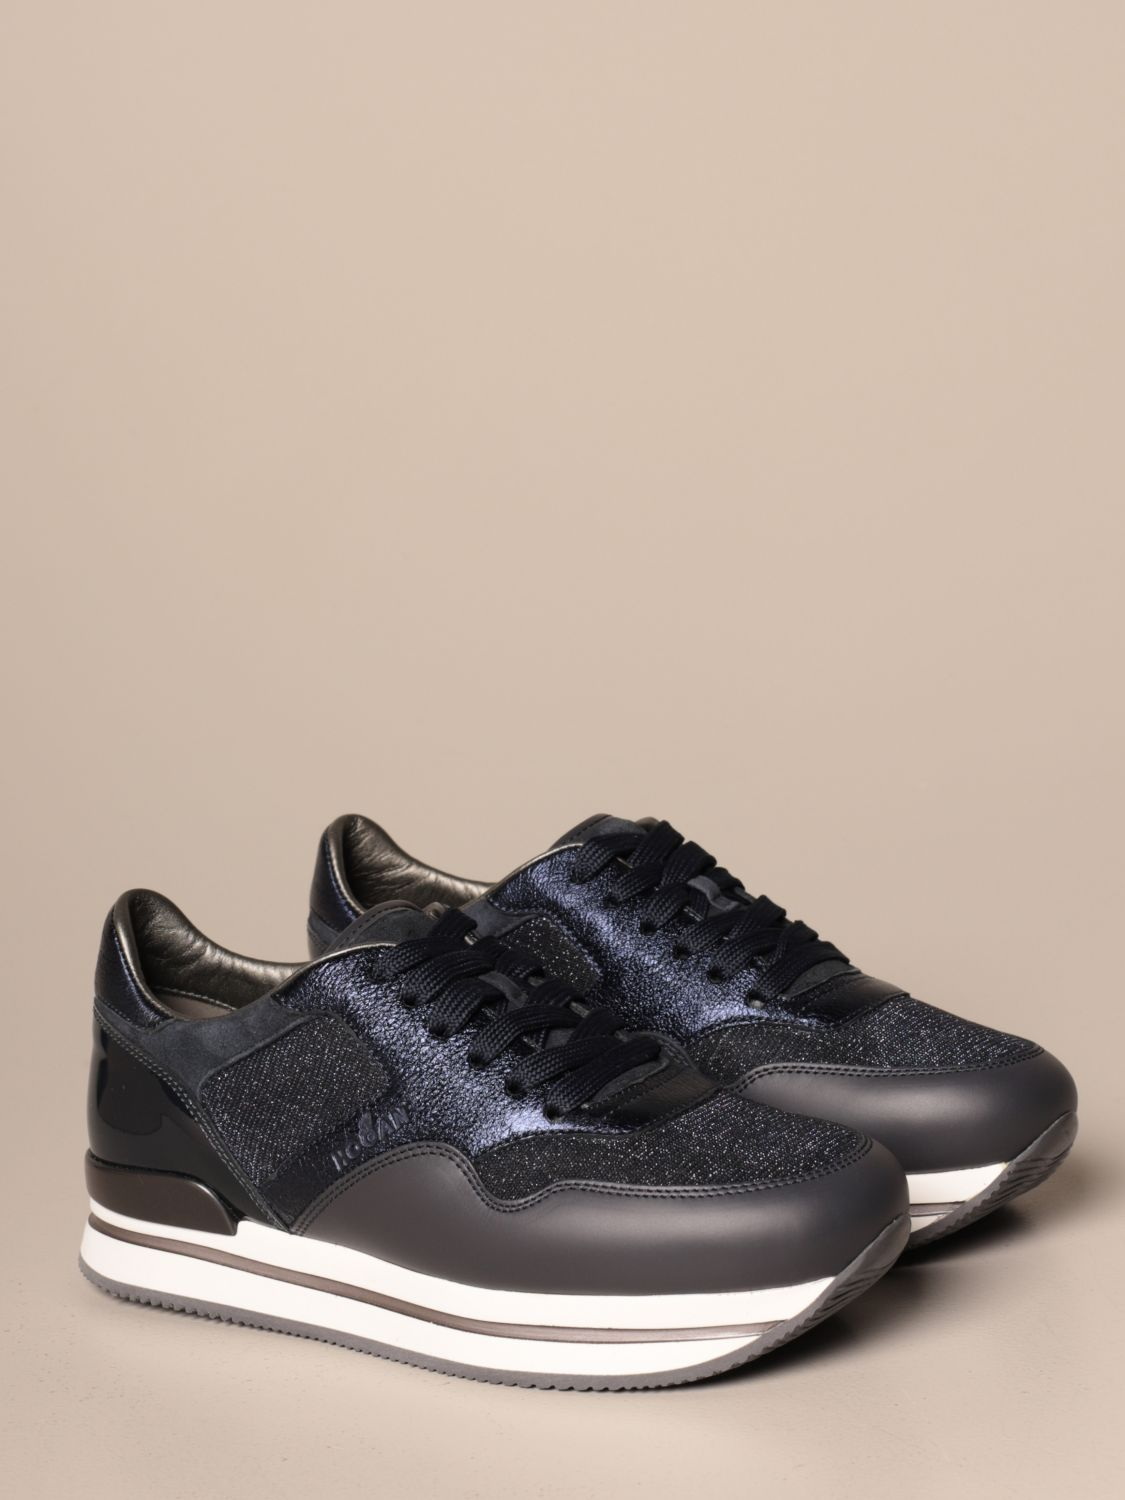 H222 running Hogan leather and lurex fabric sneakers